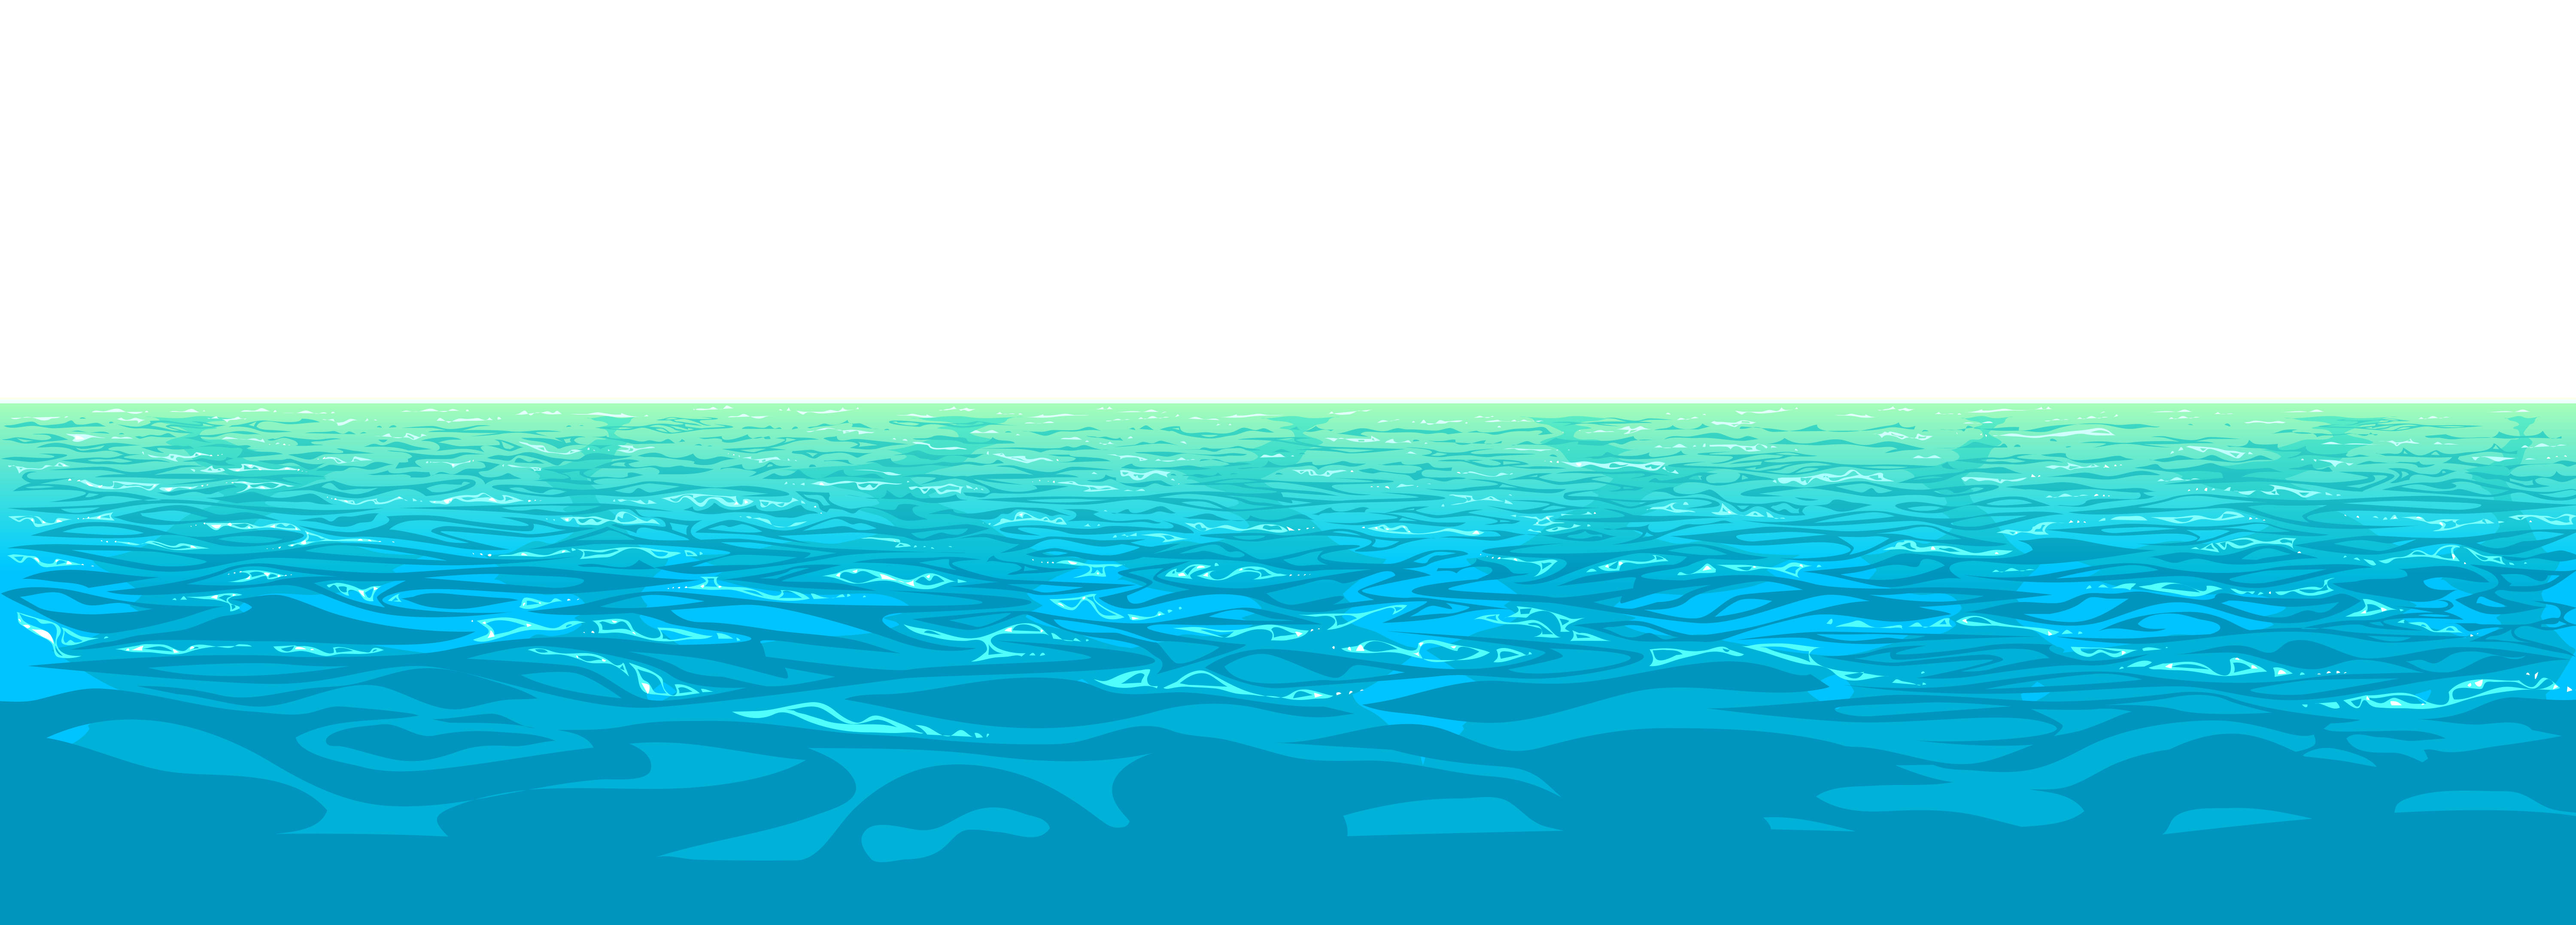 Water ocean background clipart svg black and white library Cartoon water texture clipart images gallery for free ... svg black and white library